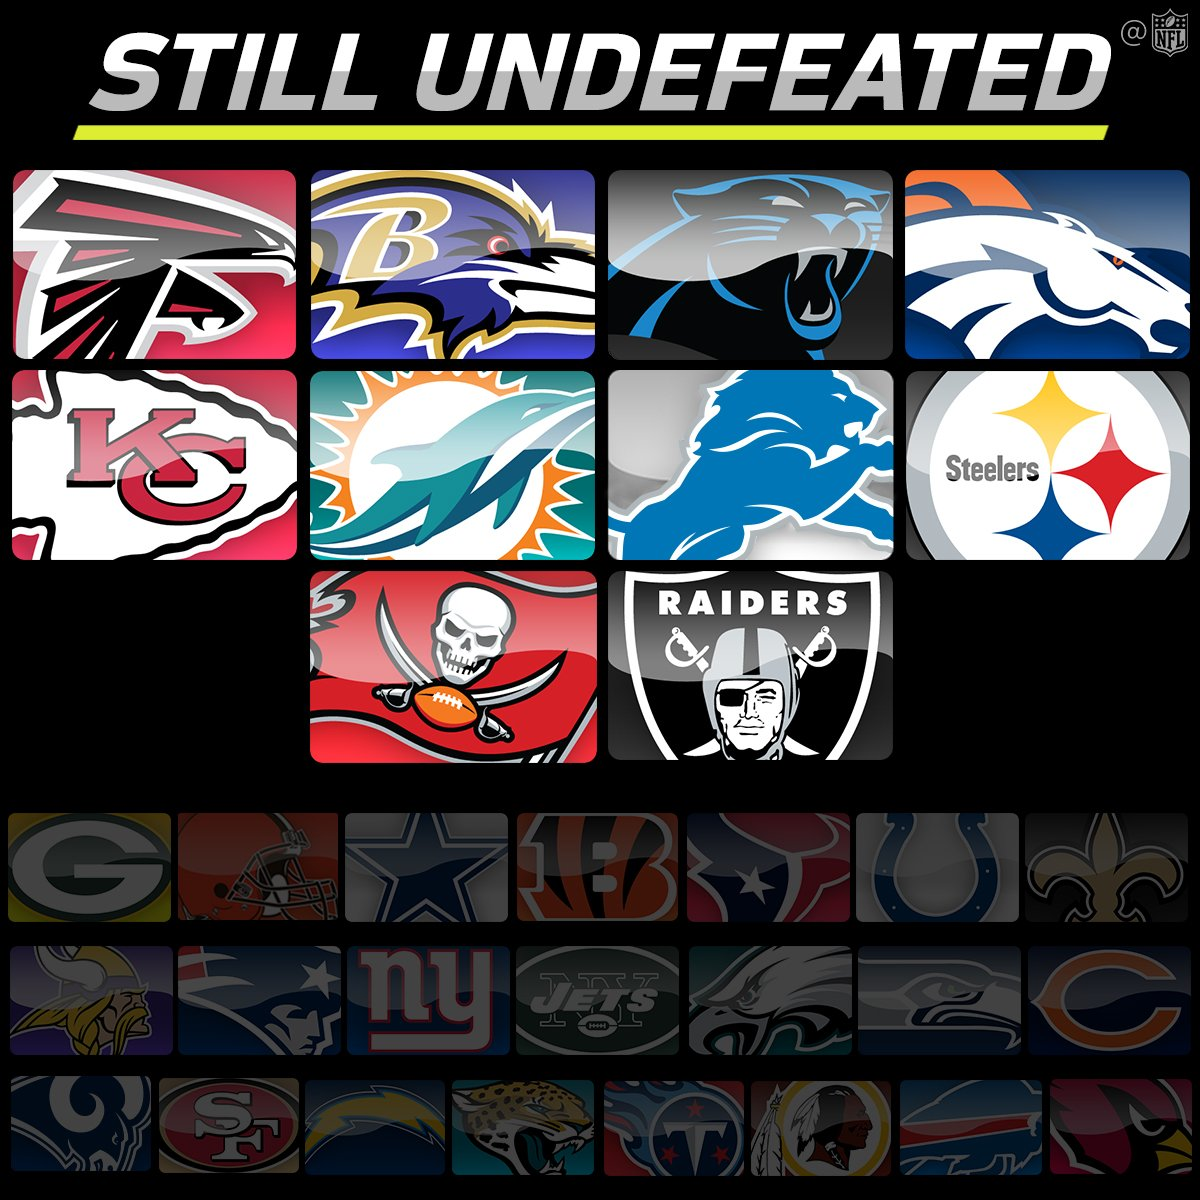 RT @NFL: 10 undefeated teams remain... https://t.co/XV5EYKokvr